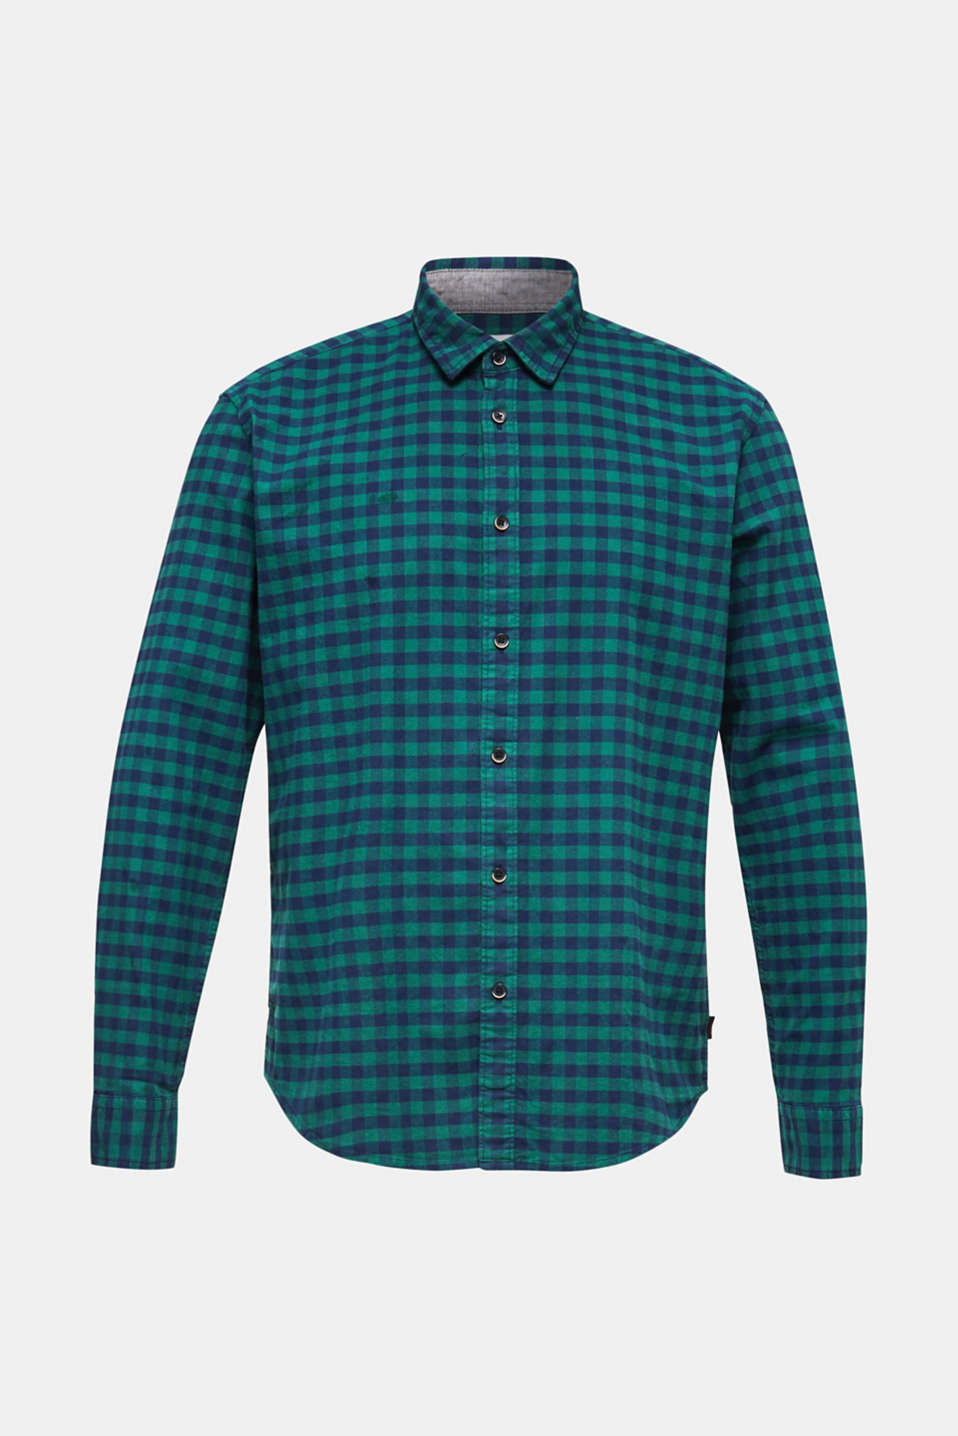 Flannel shirt with checks, made of stretch cotton, DARK GREEN, detail image number 6